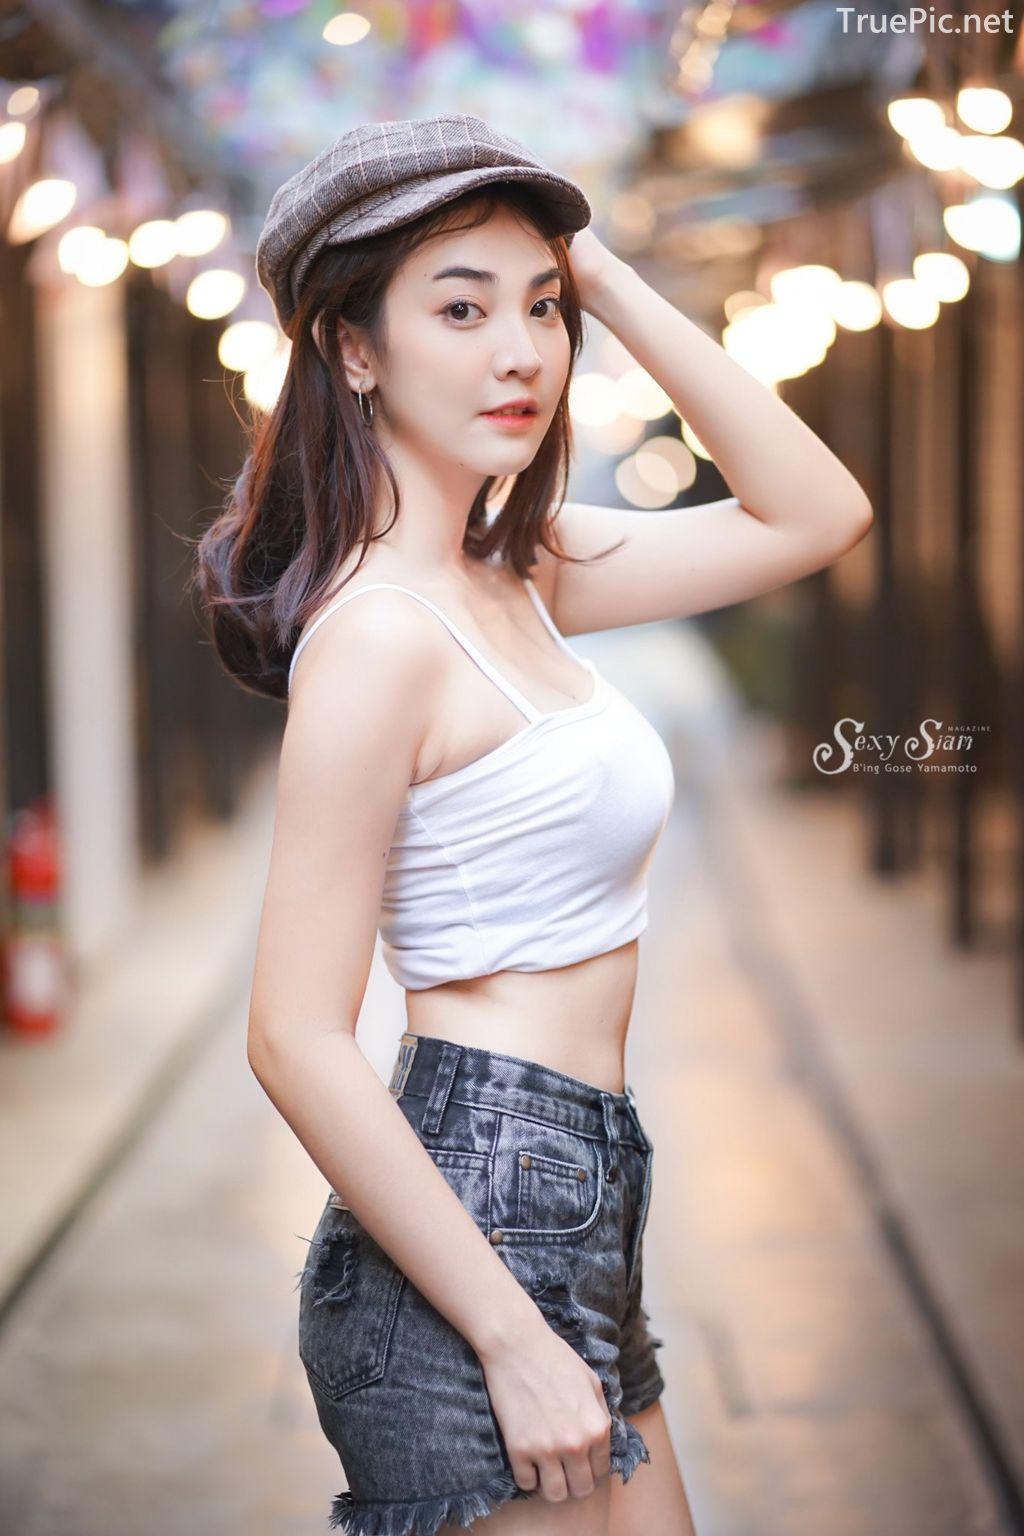 Thailand beautifil girl - Wannapon Thongkayai - The Angel on the City Street - TruePic.net - Picture 7